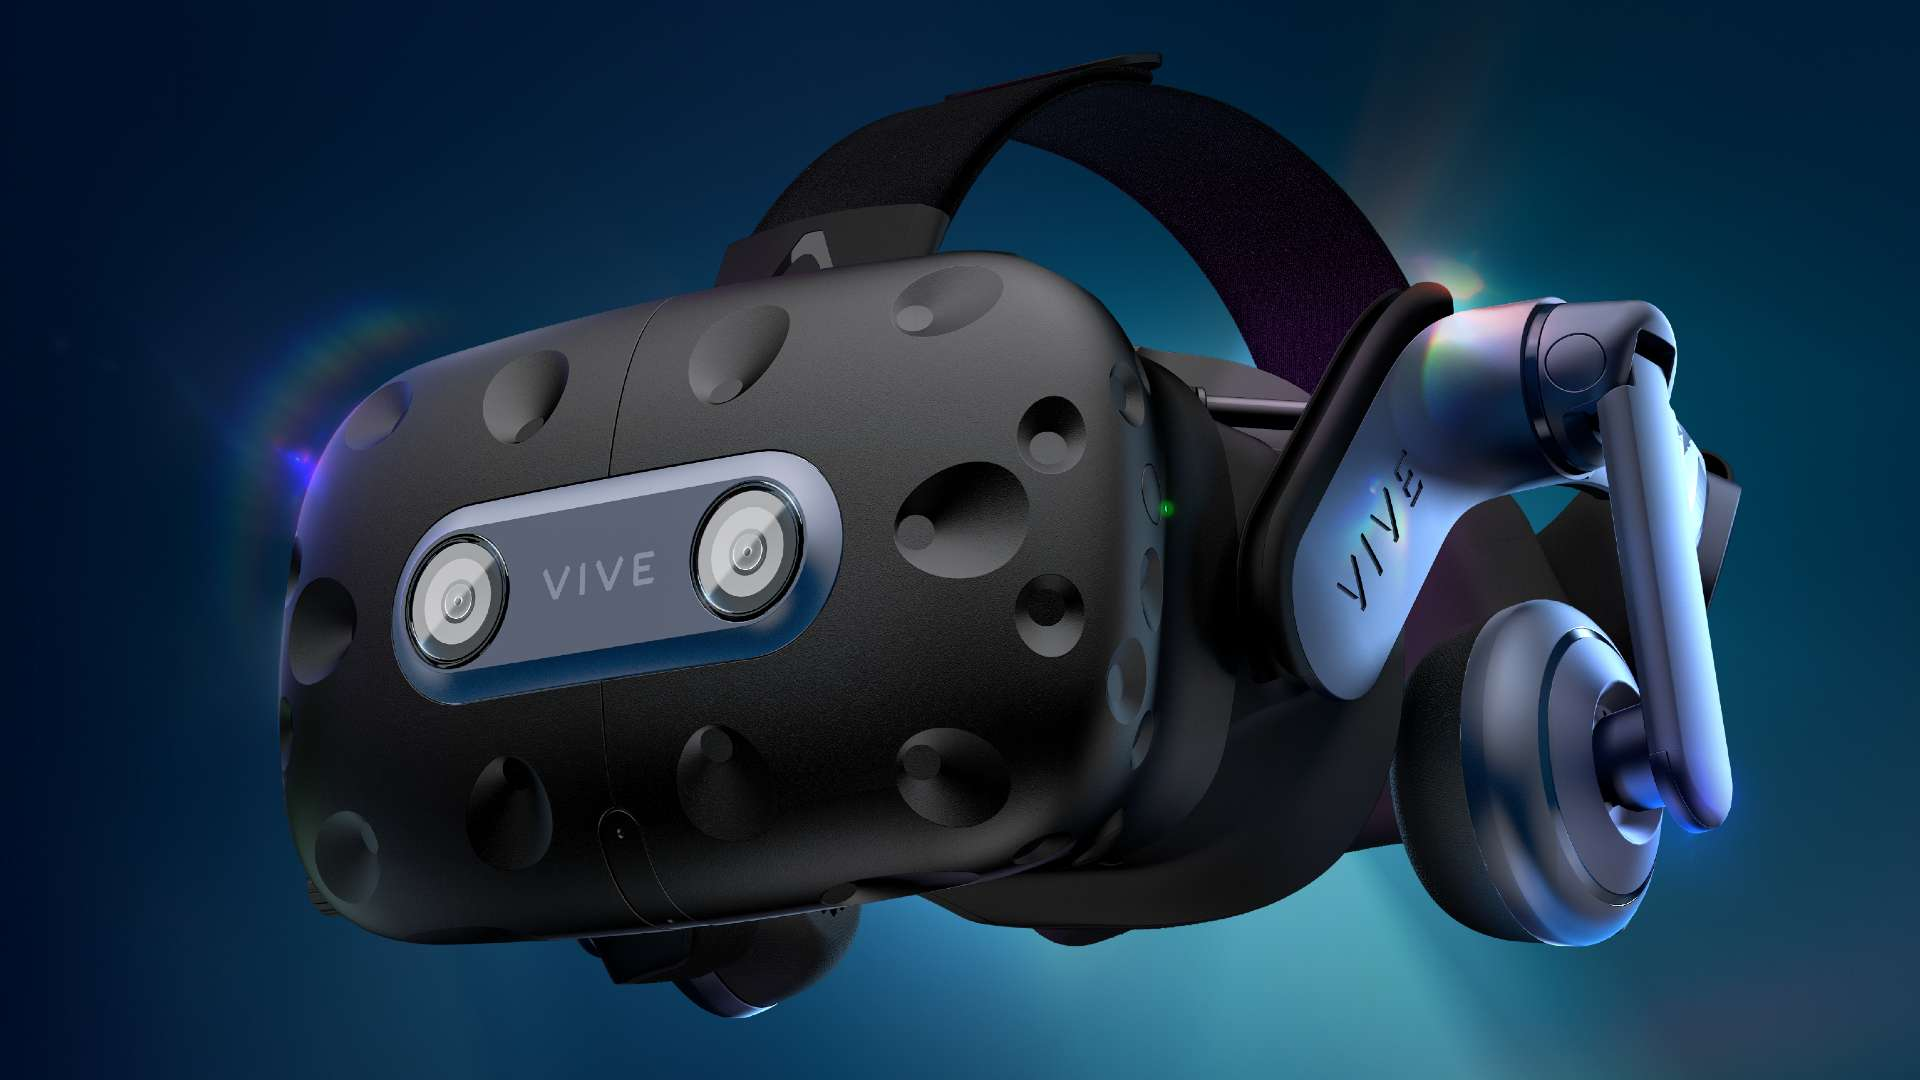 New HTC Vive Pro 2 VR headset packs a 5K resolution and 120Hz refresh rate